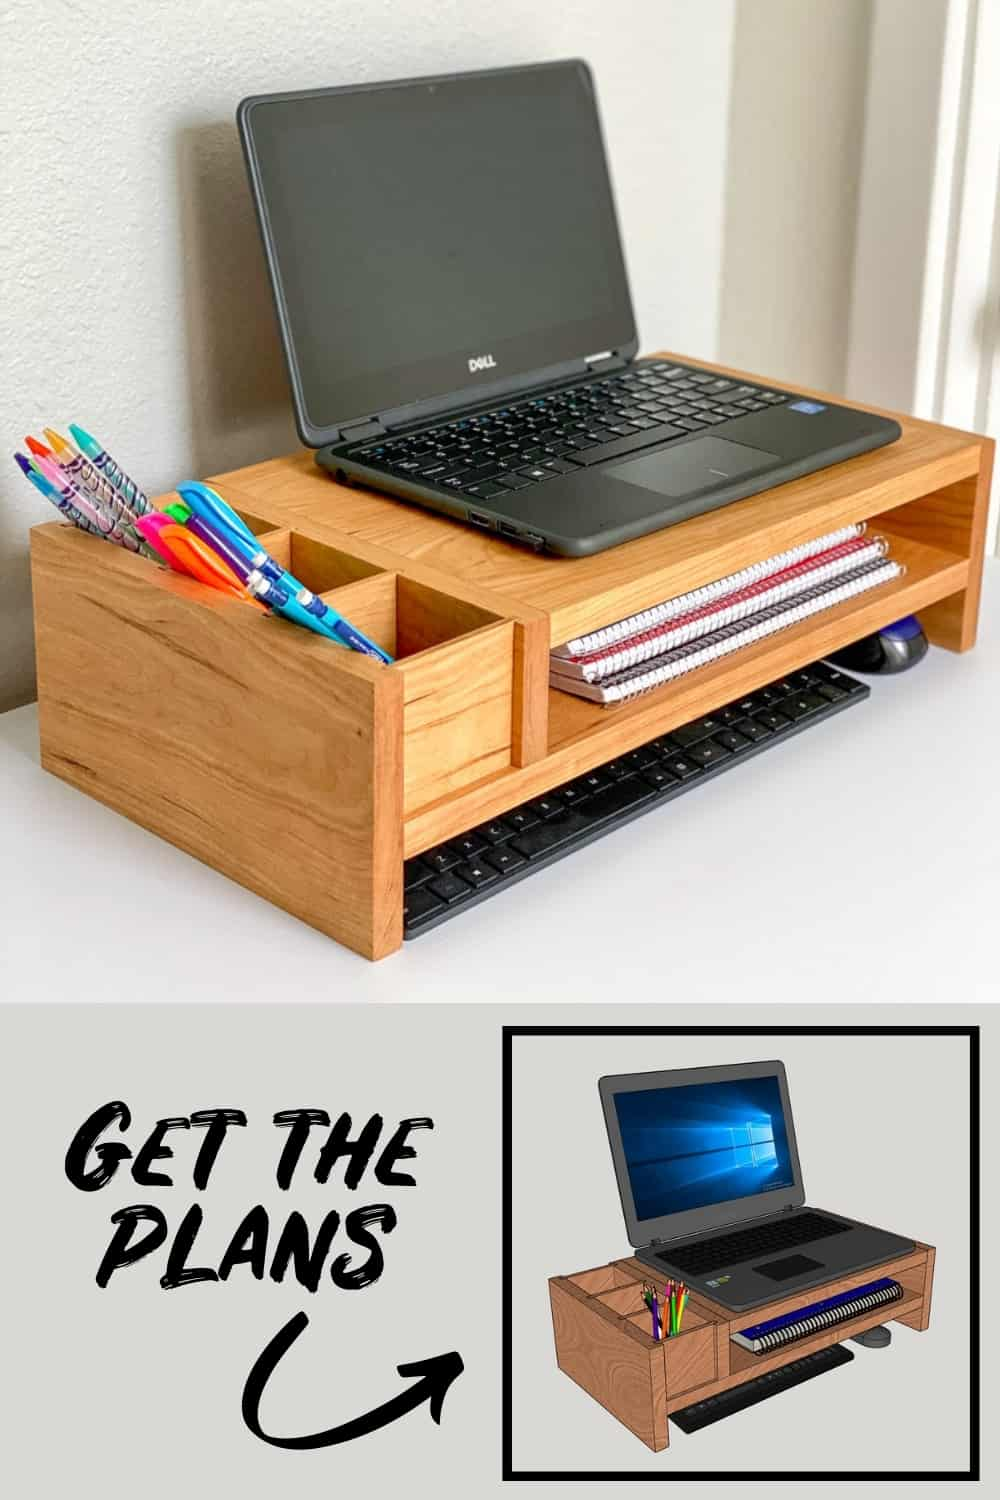 DIY Laptop Stand with Plans